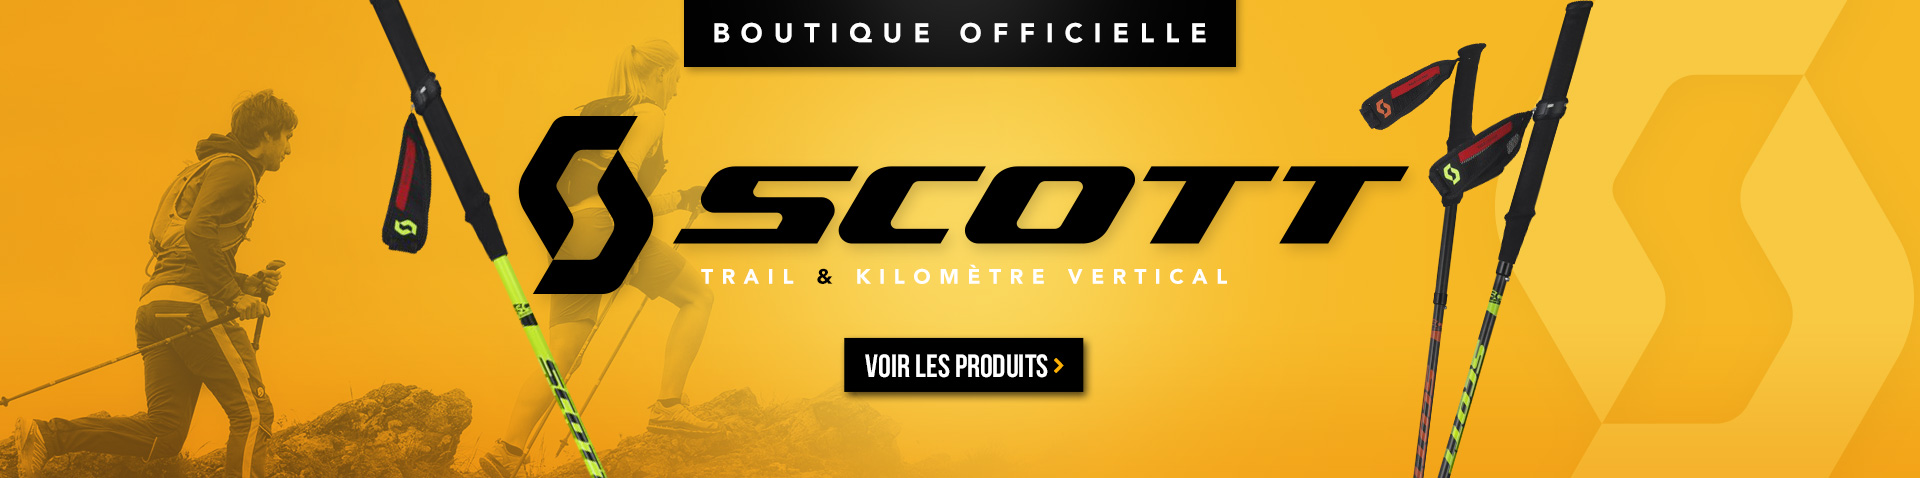 Boutique Officielle Scott